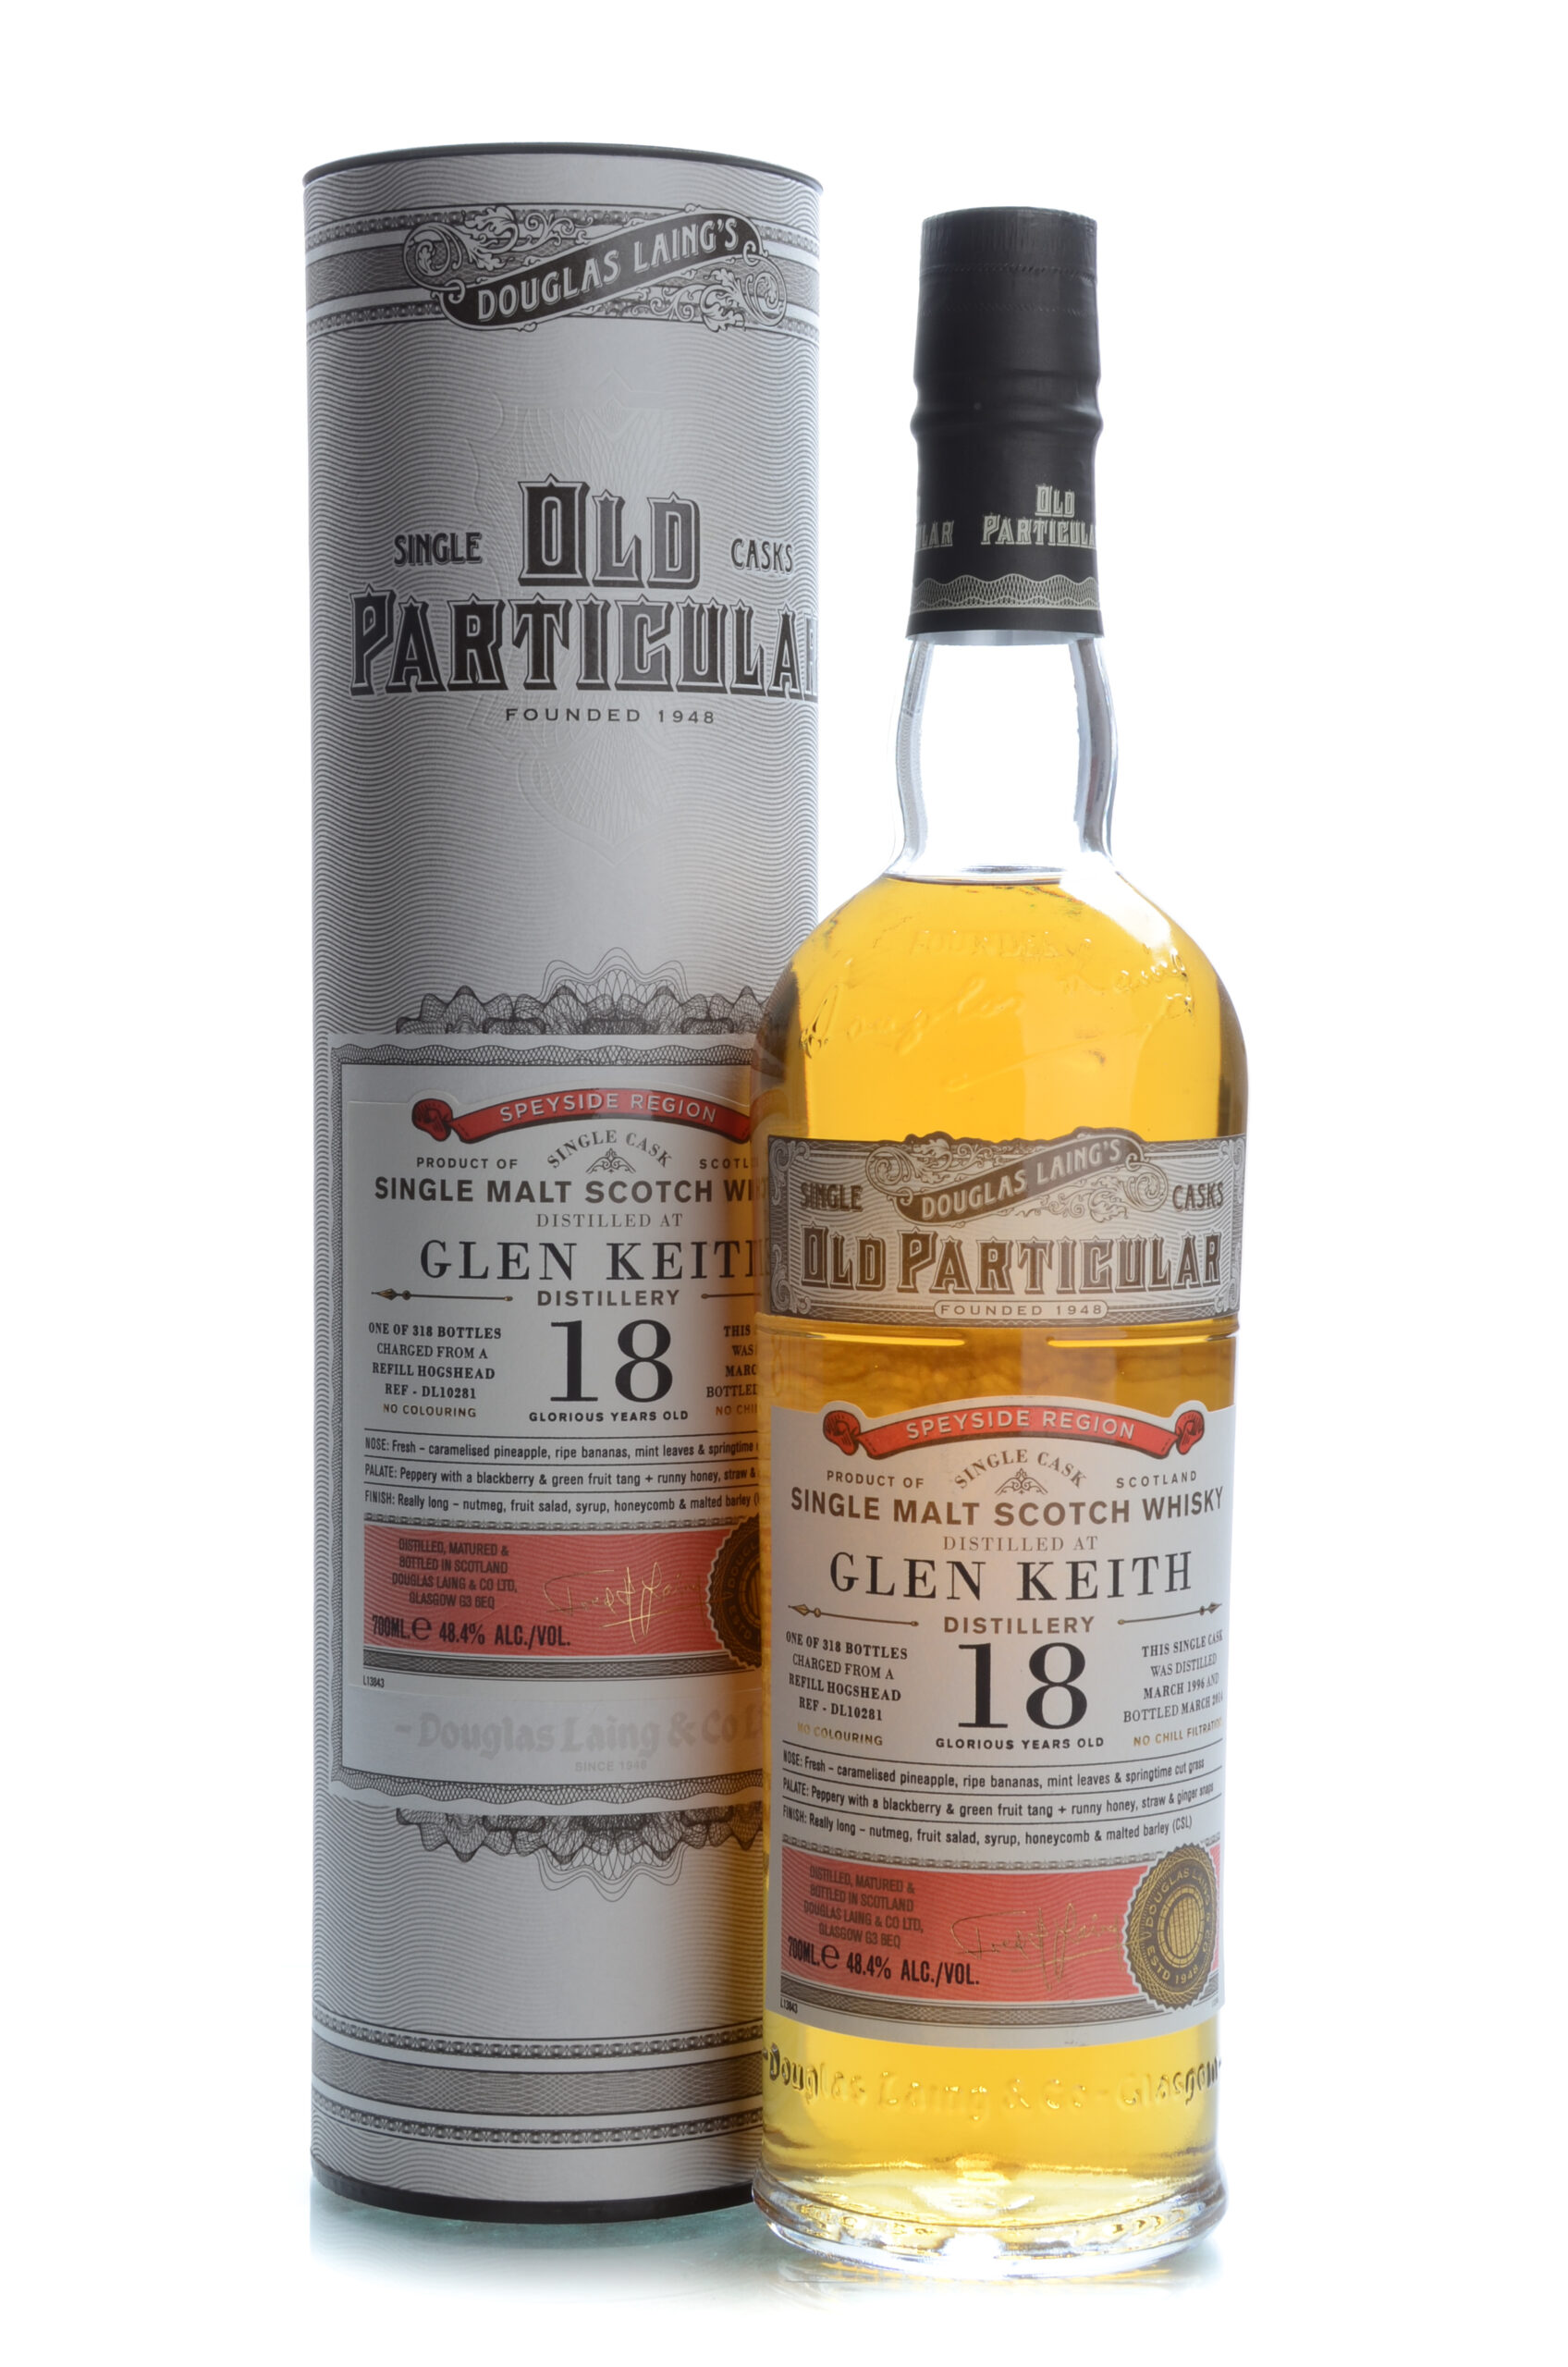 Old Particular Glen Keith 18 years